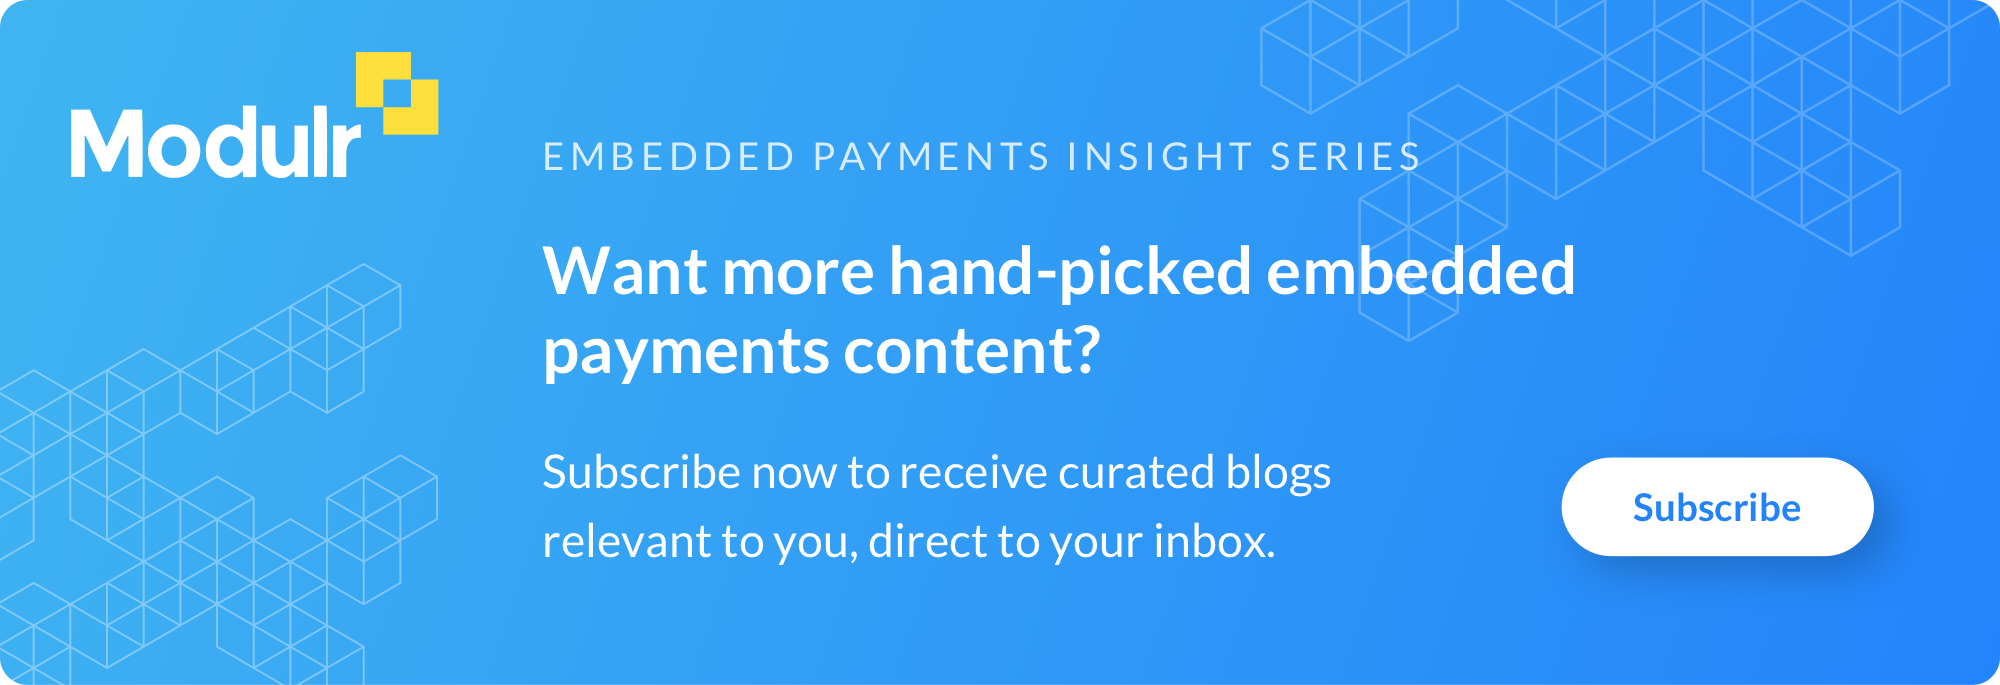 Embedded_Payments_Insight_Series_subscribe